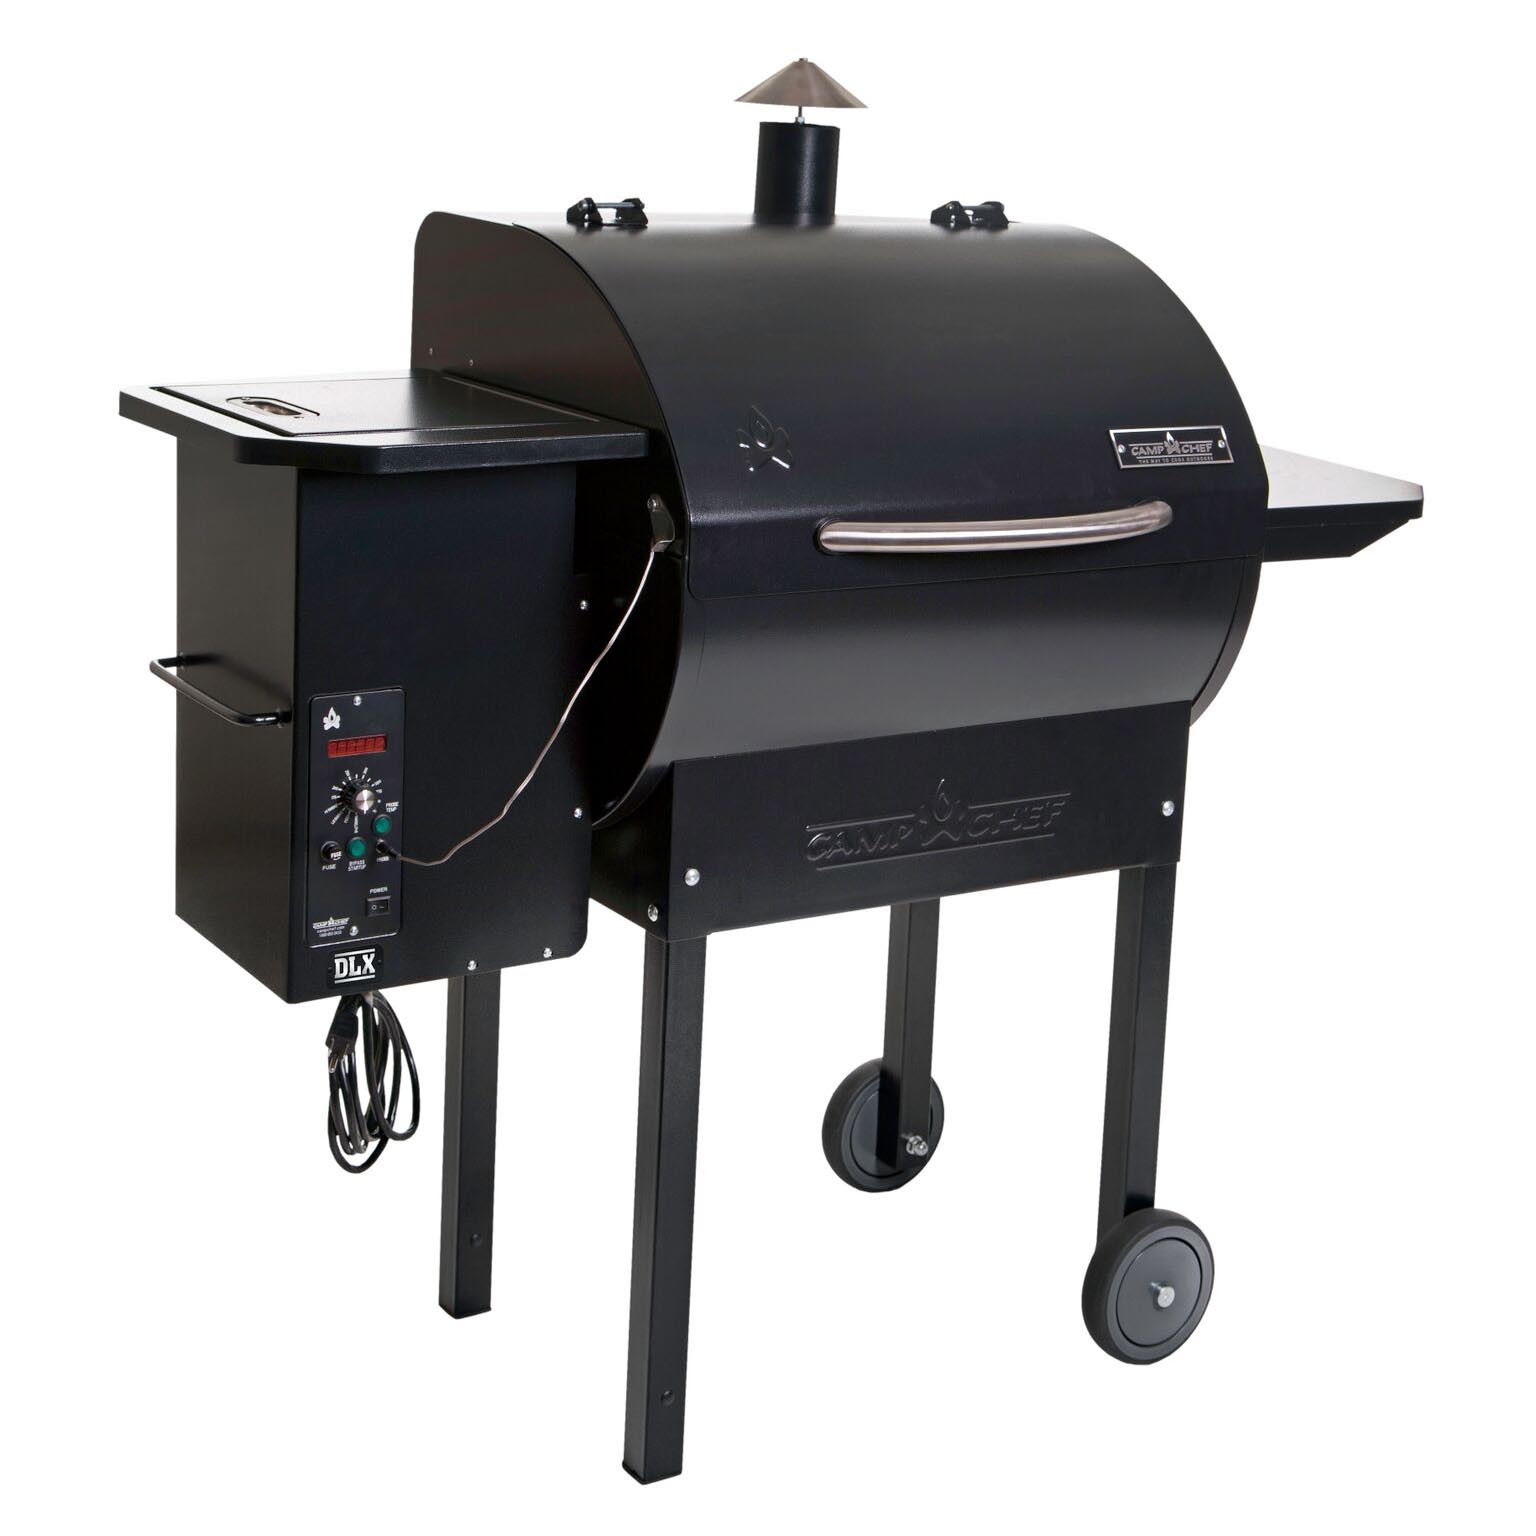 Camp chef smokepro dlx wood pellet outdoor bbq grill and smoker black pg24 ebay - Pellet grills and smokers ...